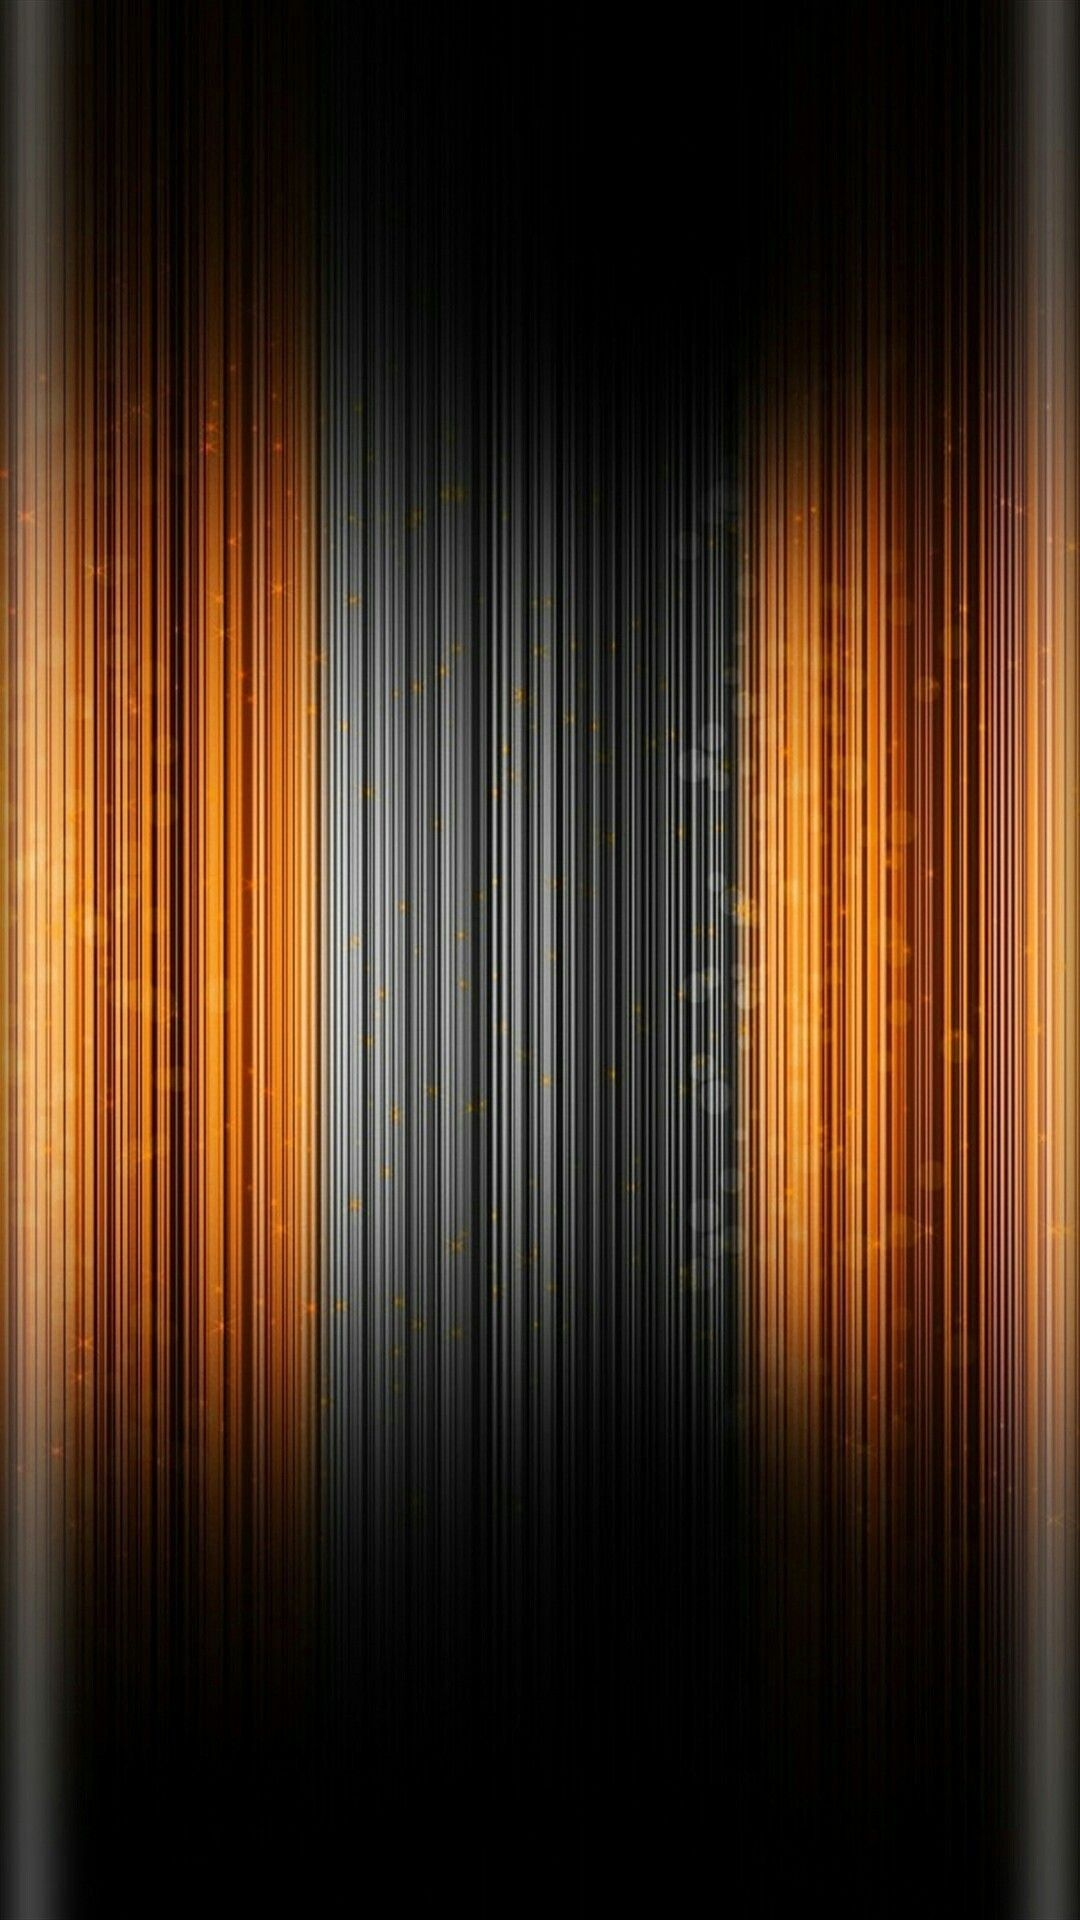 Orange and Black Gradient Wallpaper Abstract and Geometric 1080x1920